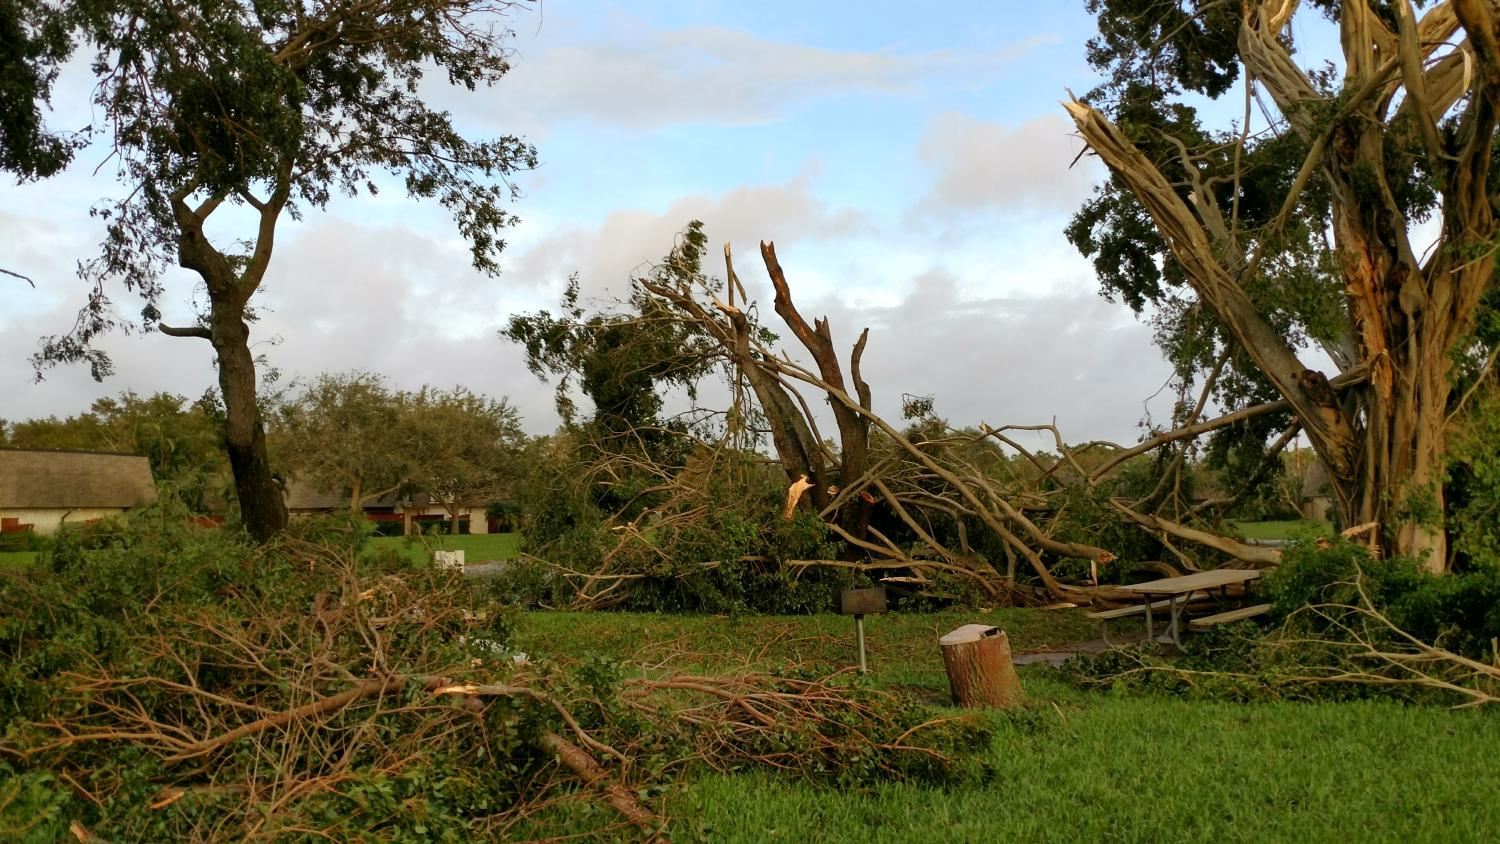 Fallen trees scatter a neighborhood in De;ray Beach, Florida. Hurricane Harvey, Irma and Maria all led to widespread tree damage, power outages and flooding. Photo courtesy Jill Kittredge.